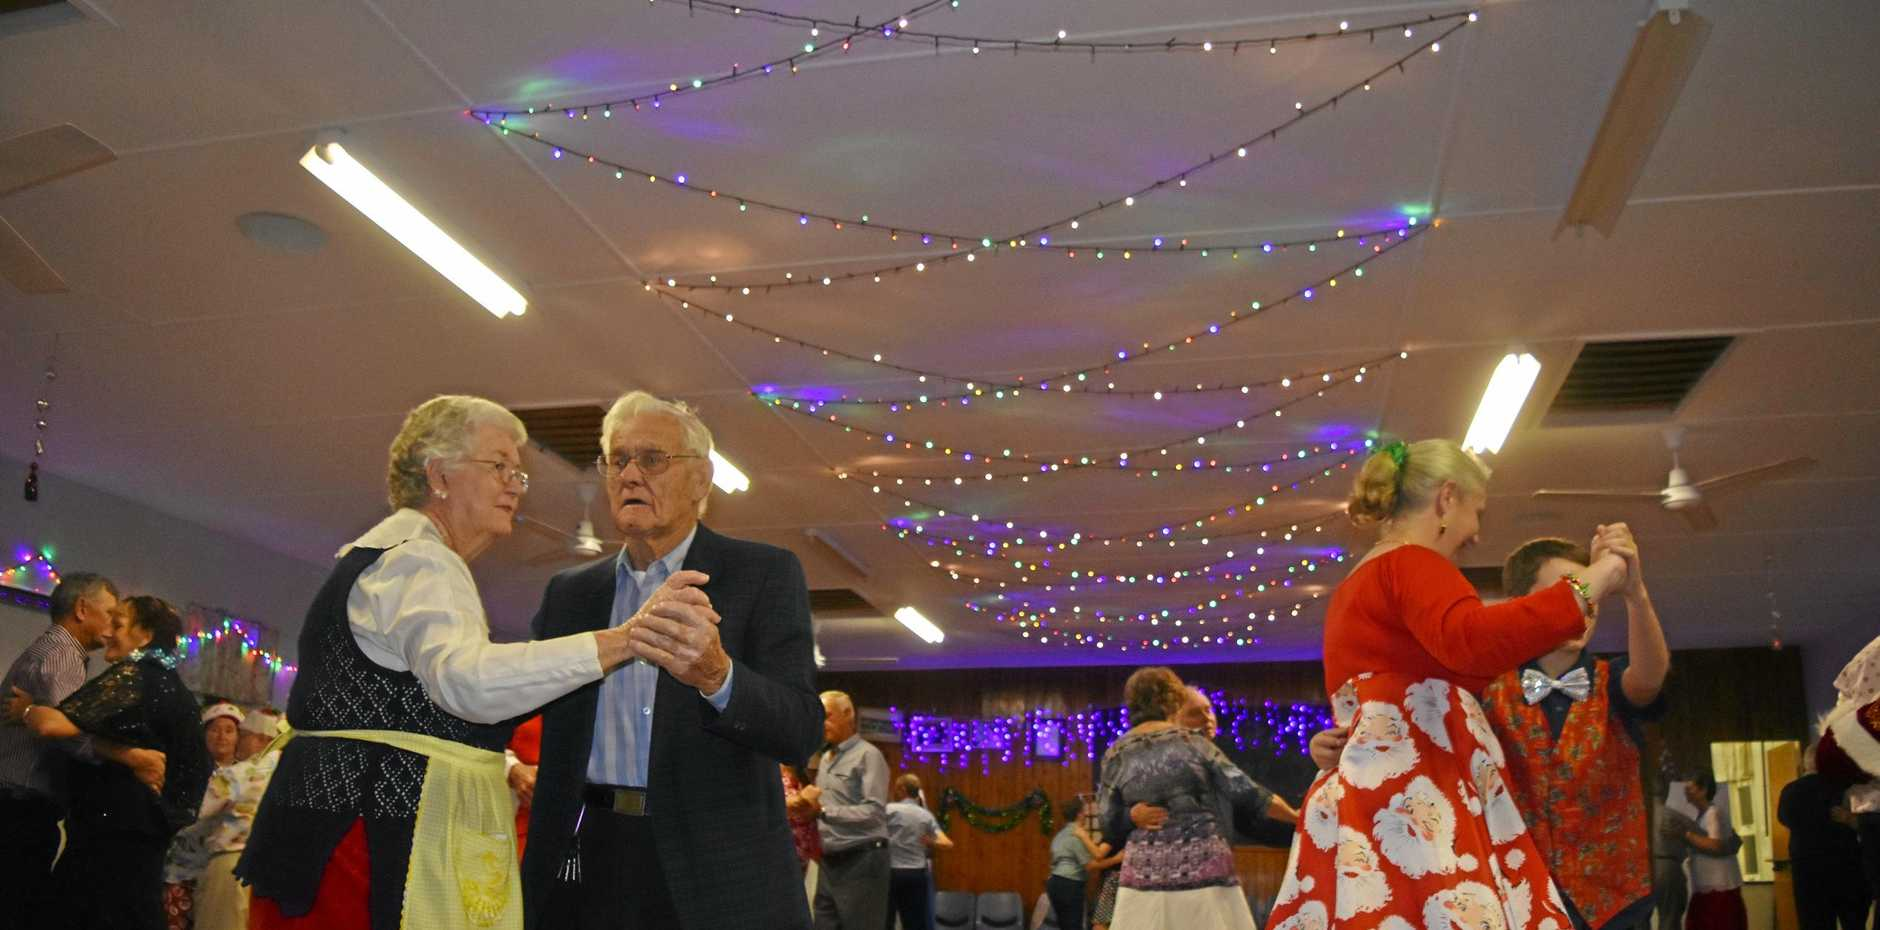 St Ruth celebrated the festive season a little early with their annual Christmas in July dance.